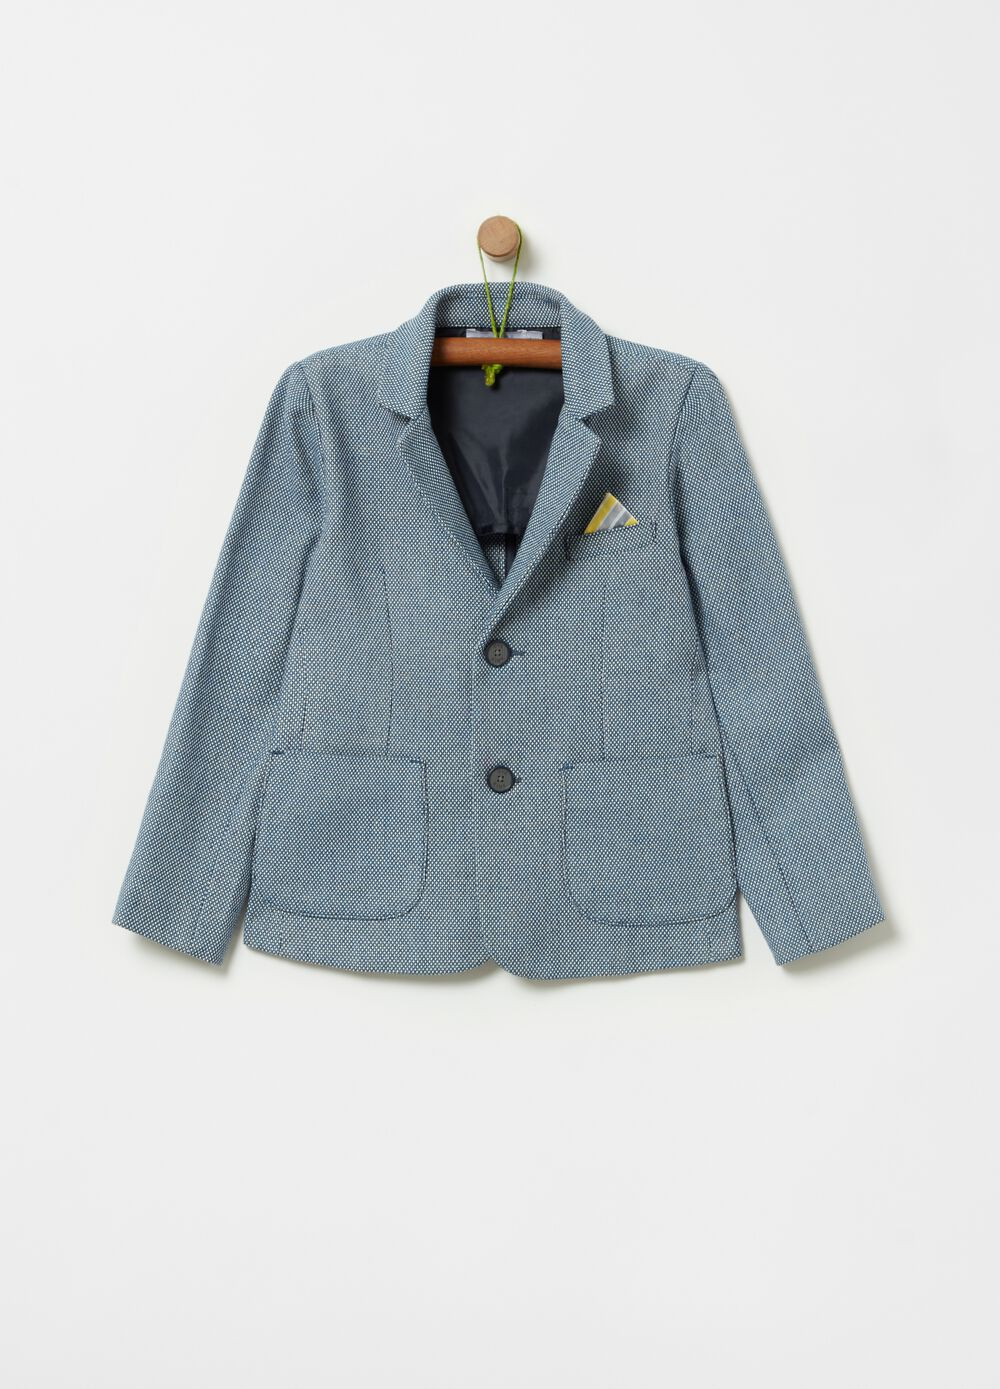 Jacket with handkerchief and lapels